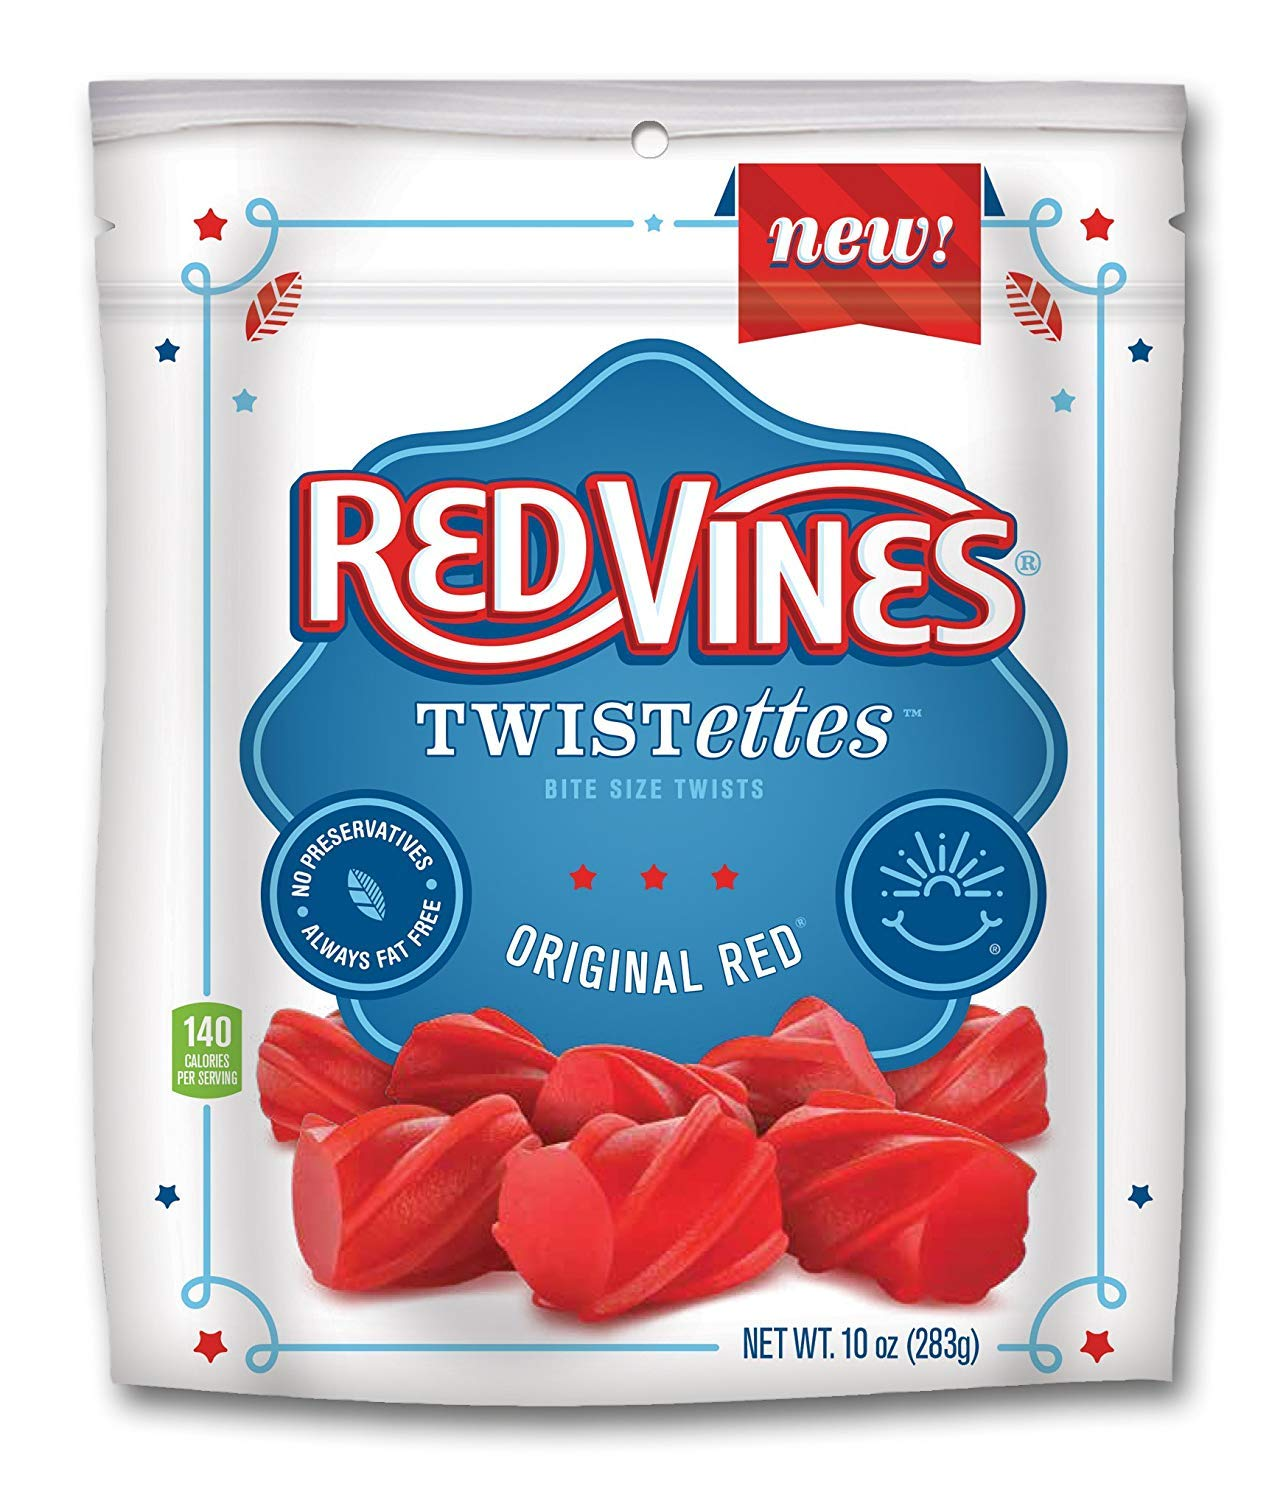 Red Vines Twistettes, Original Red Flavor, 10oz Bags (12 Pack), Soft & Chewy Candy Bites,